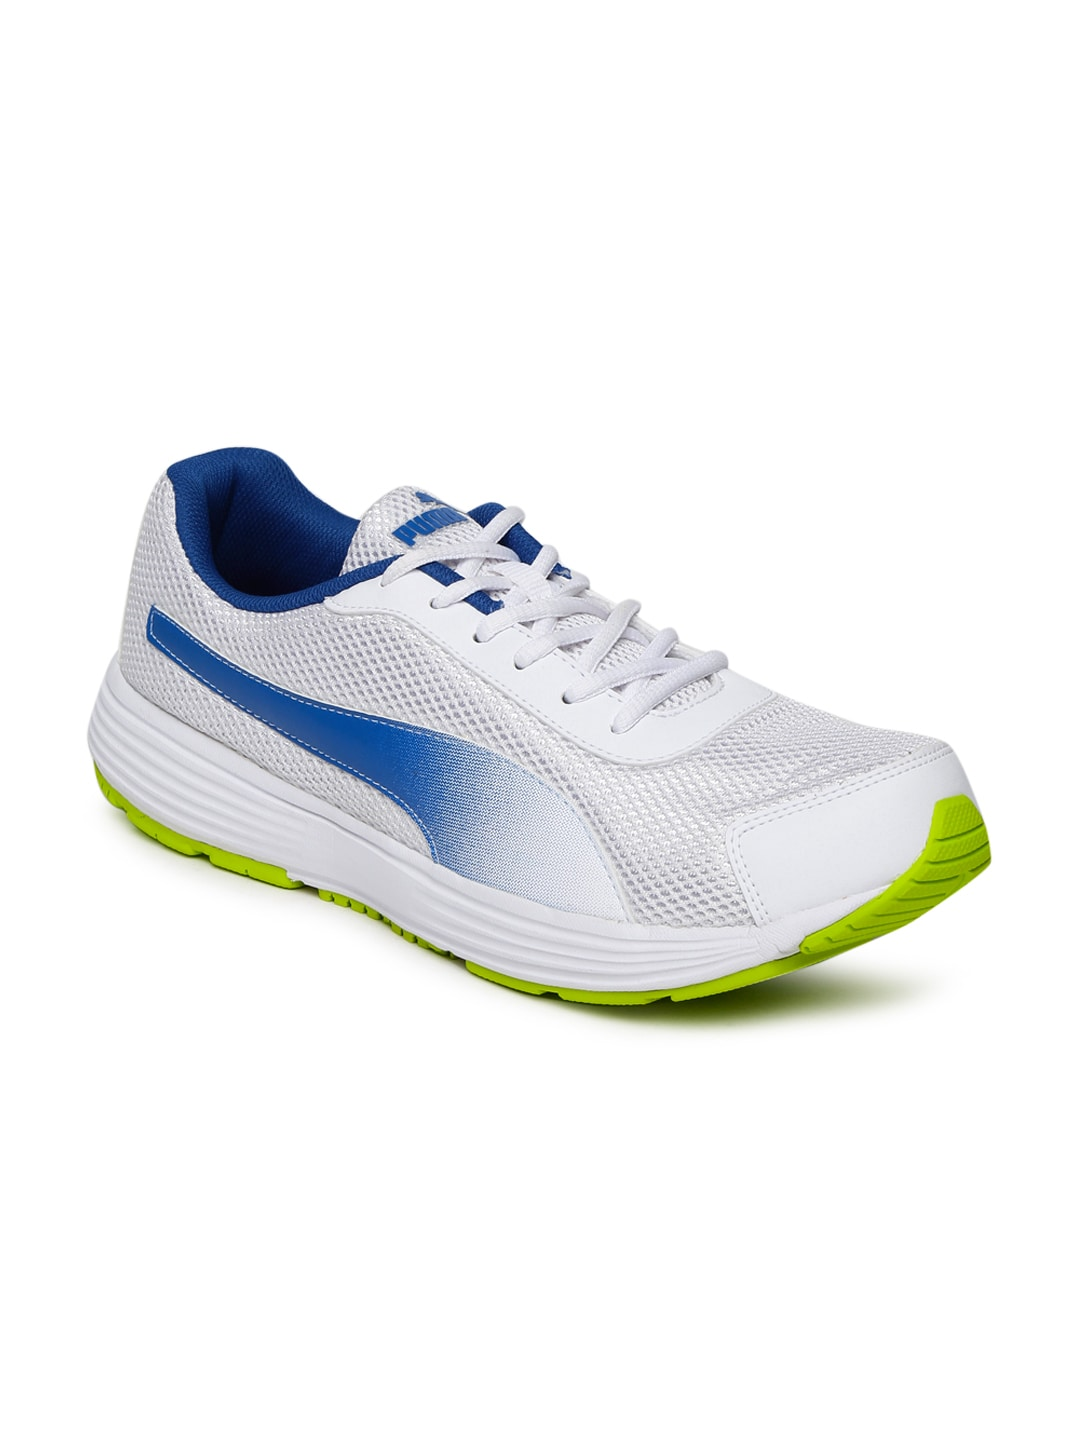 Buy PUMA Unisex Grey Bolster DP Running Shoes - Sports Shoes for ... 63c59b44e